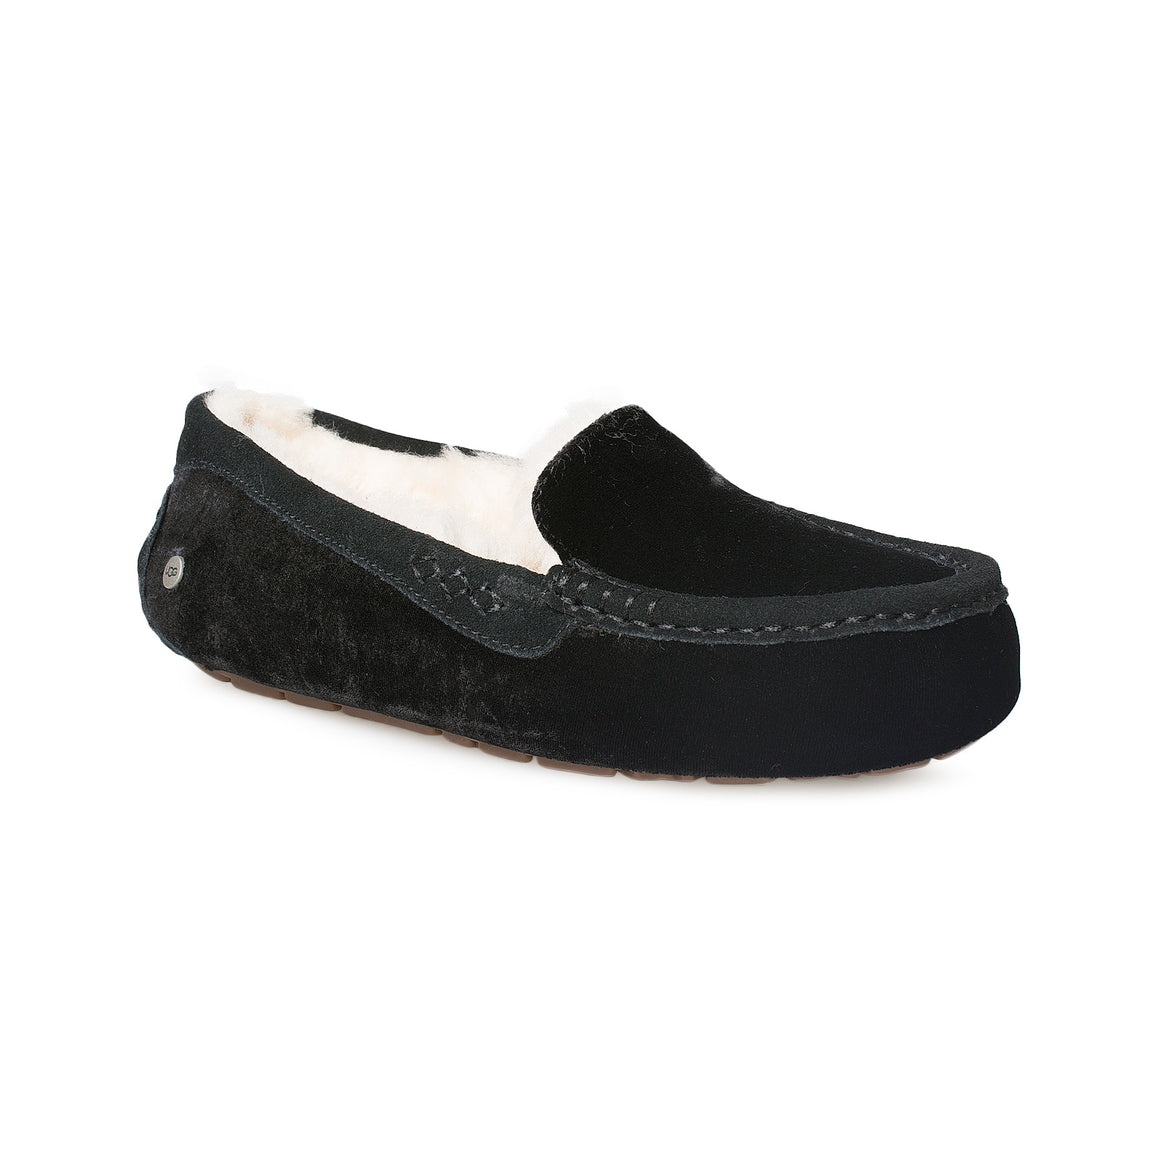 UGG Ansley Velvet Black Slippers - Women's